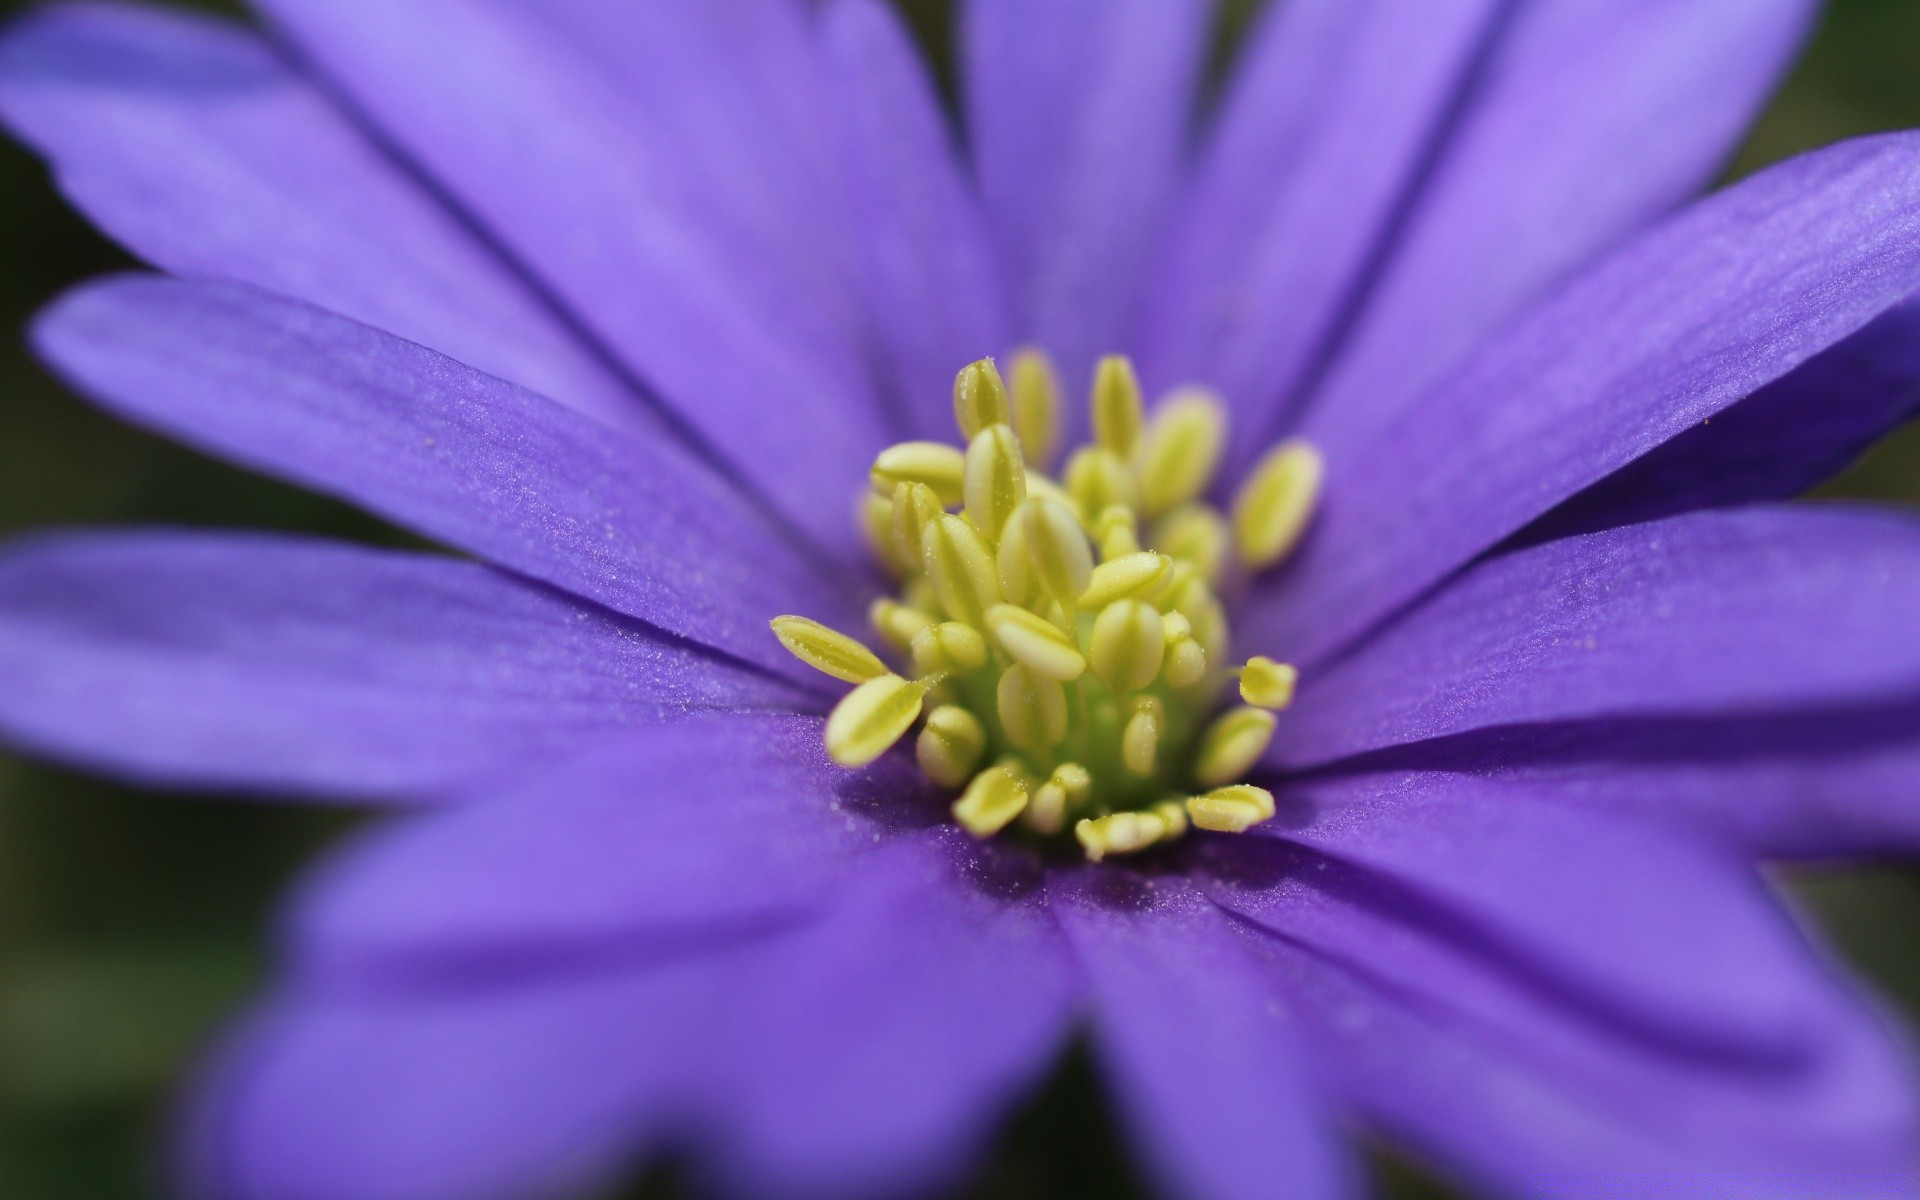 Purple flower with yellow stamens iphone wallpapers for free mightylinksfo